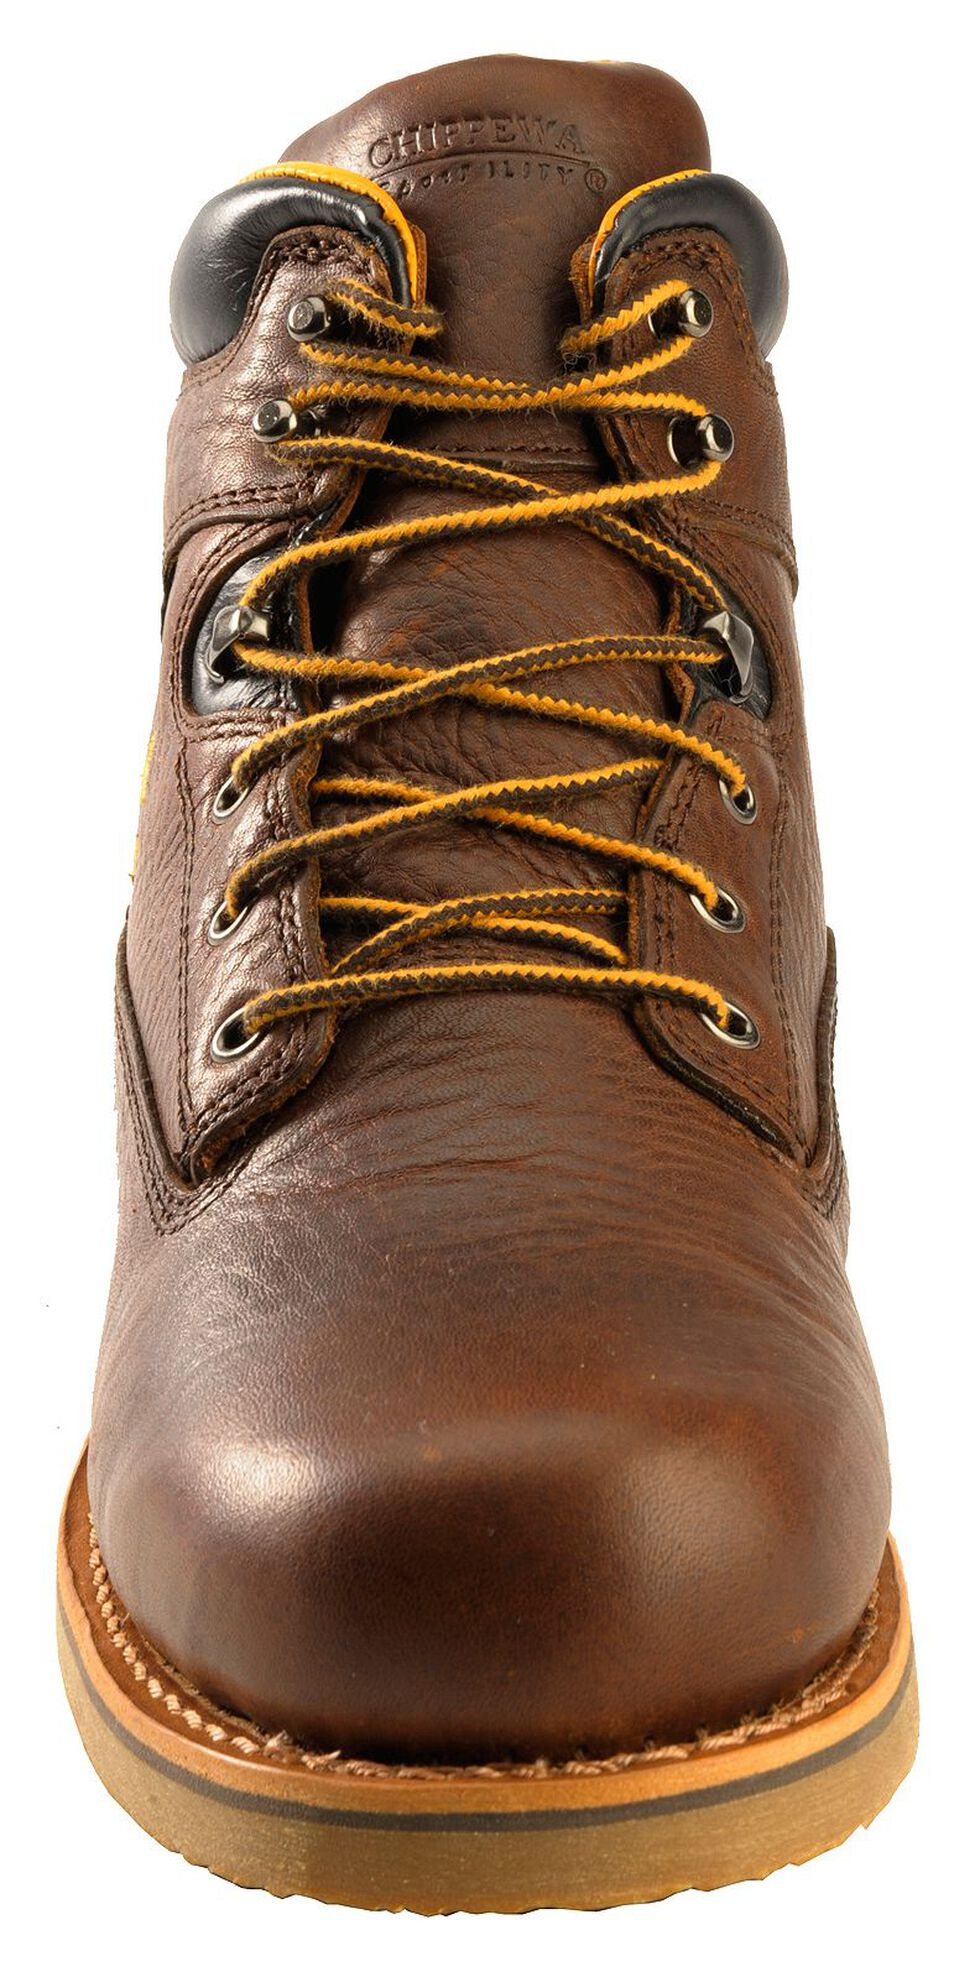 "Chippewa Waterproof & Insulated 6"" Lace-Up Work Boots - Round Toe, Brown, hi-res"